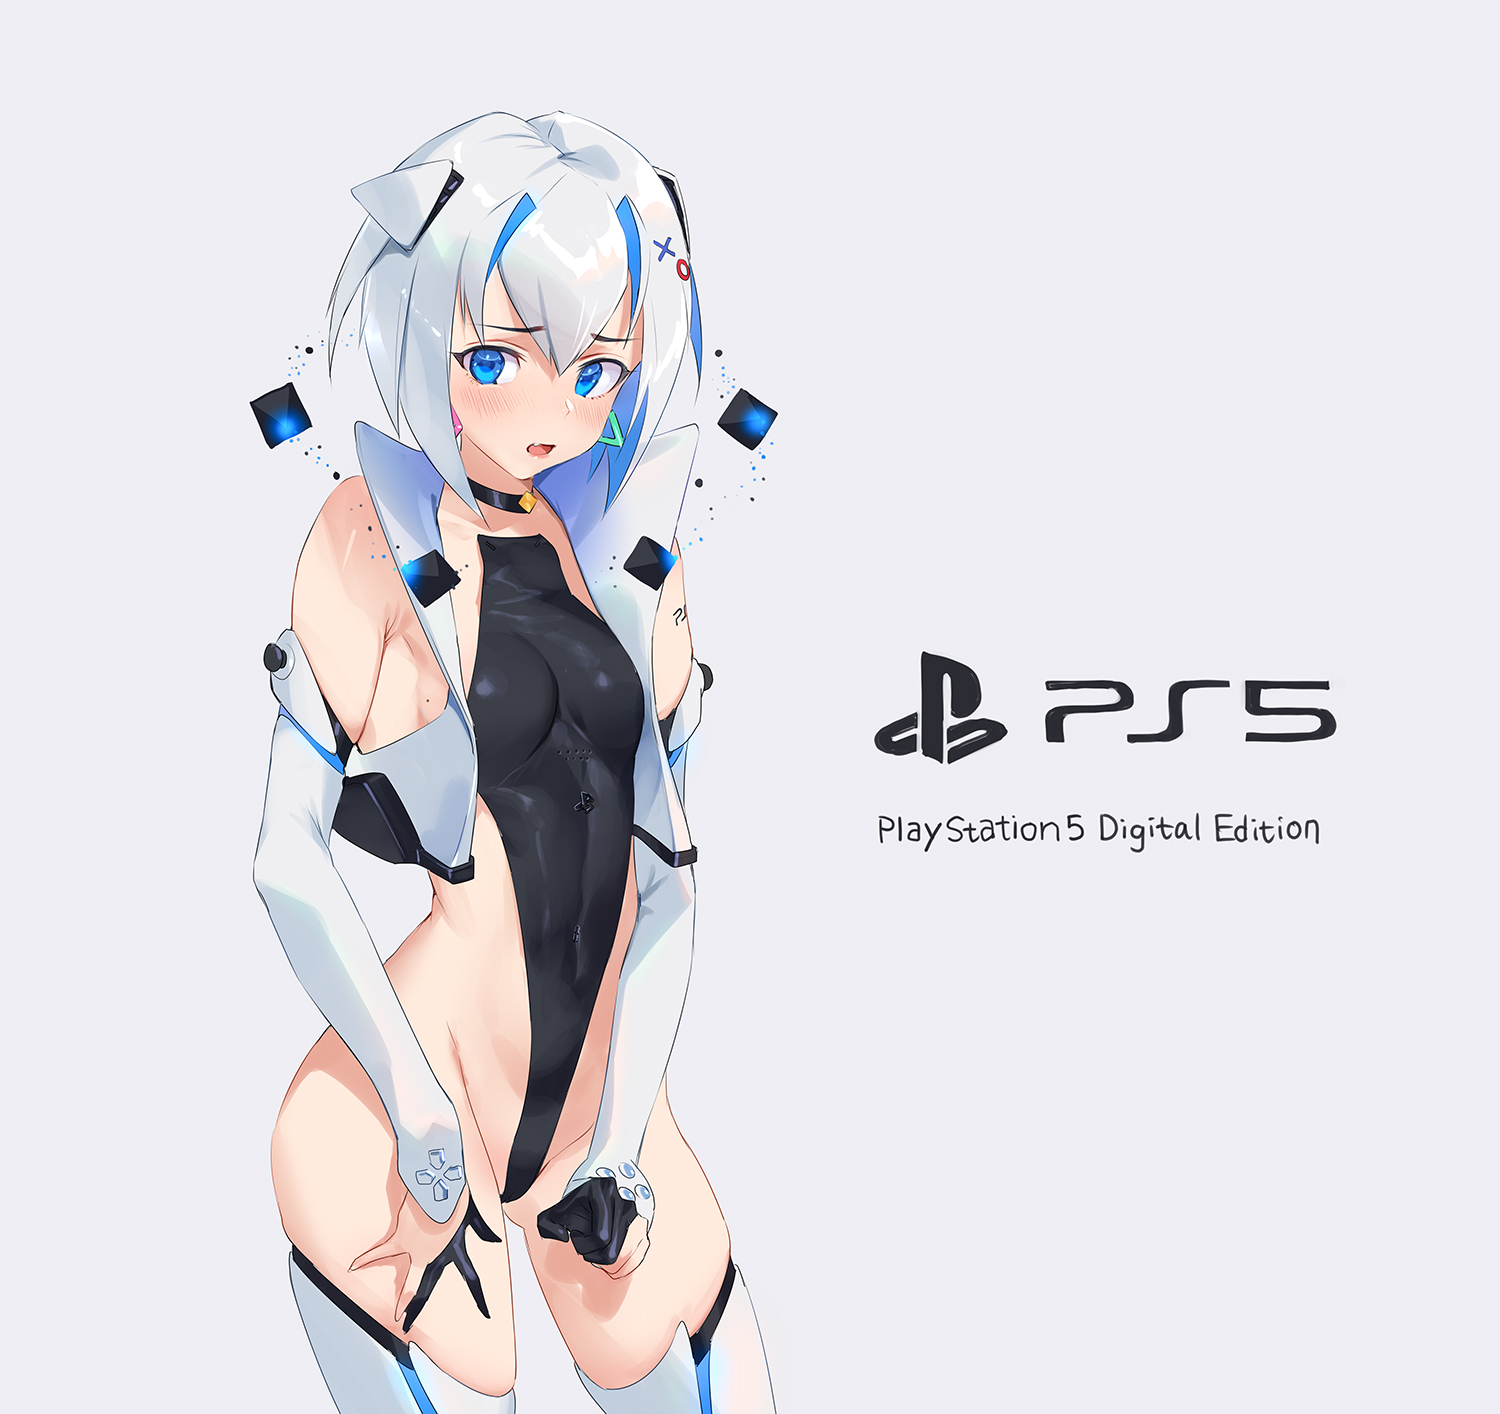 Anime 1500x1414 anime anime girls digital art artwork 2D portrait Playstation 5